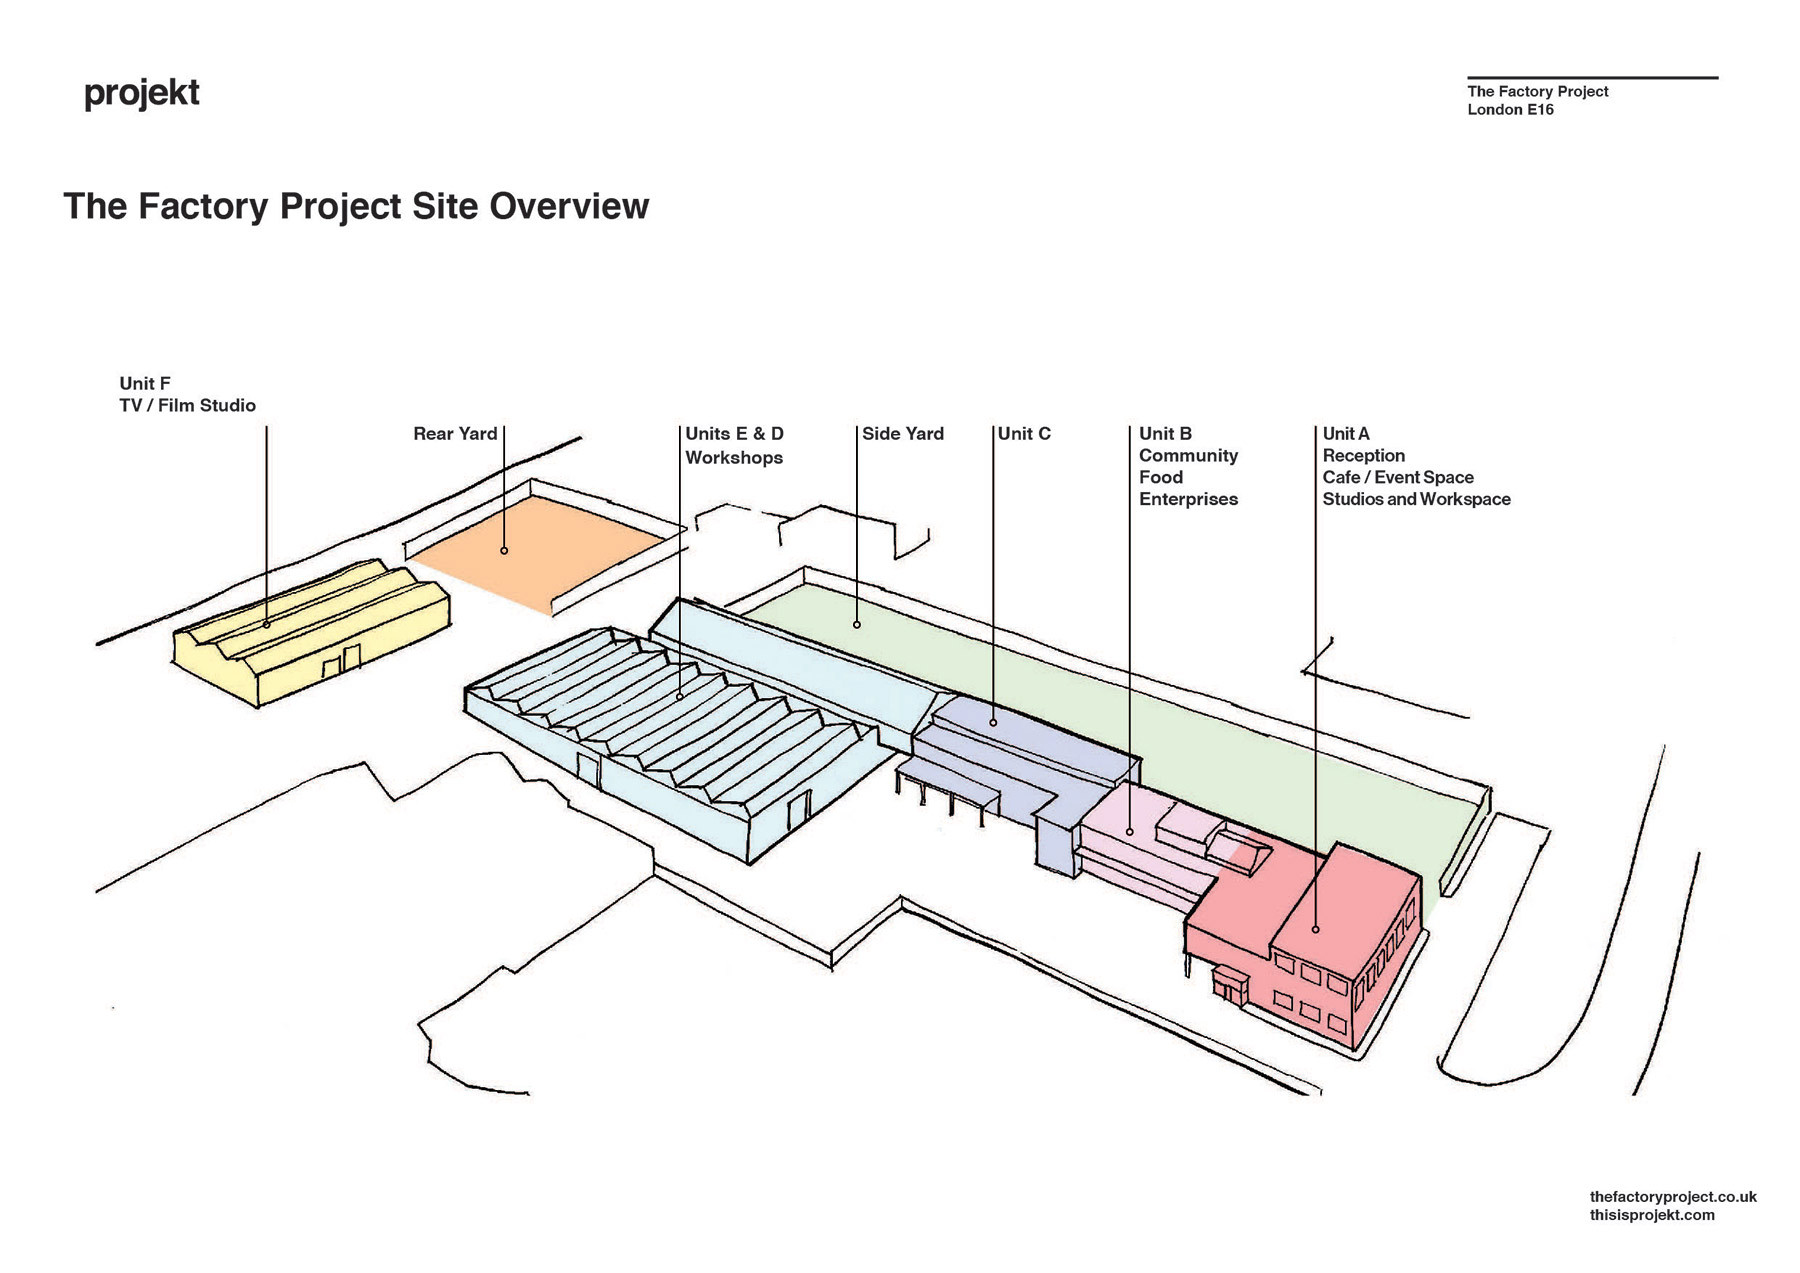 The Factory Project site overview map